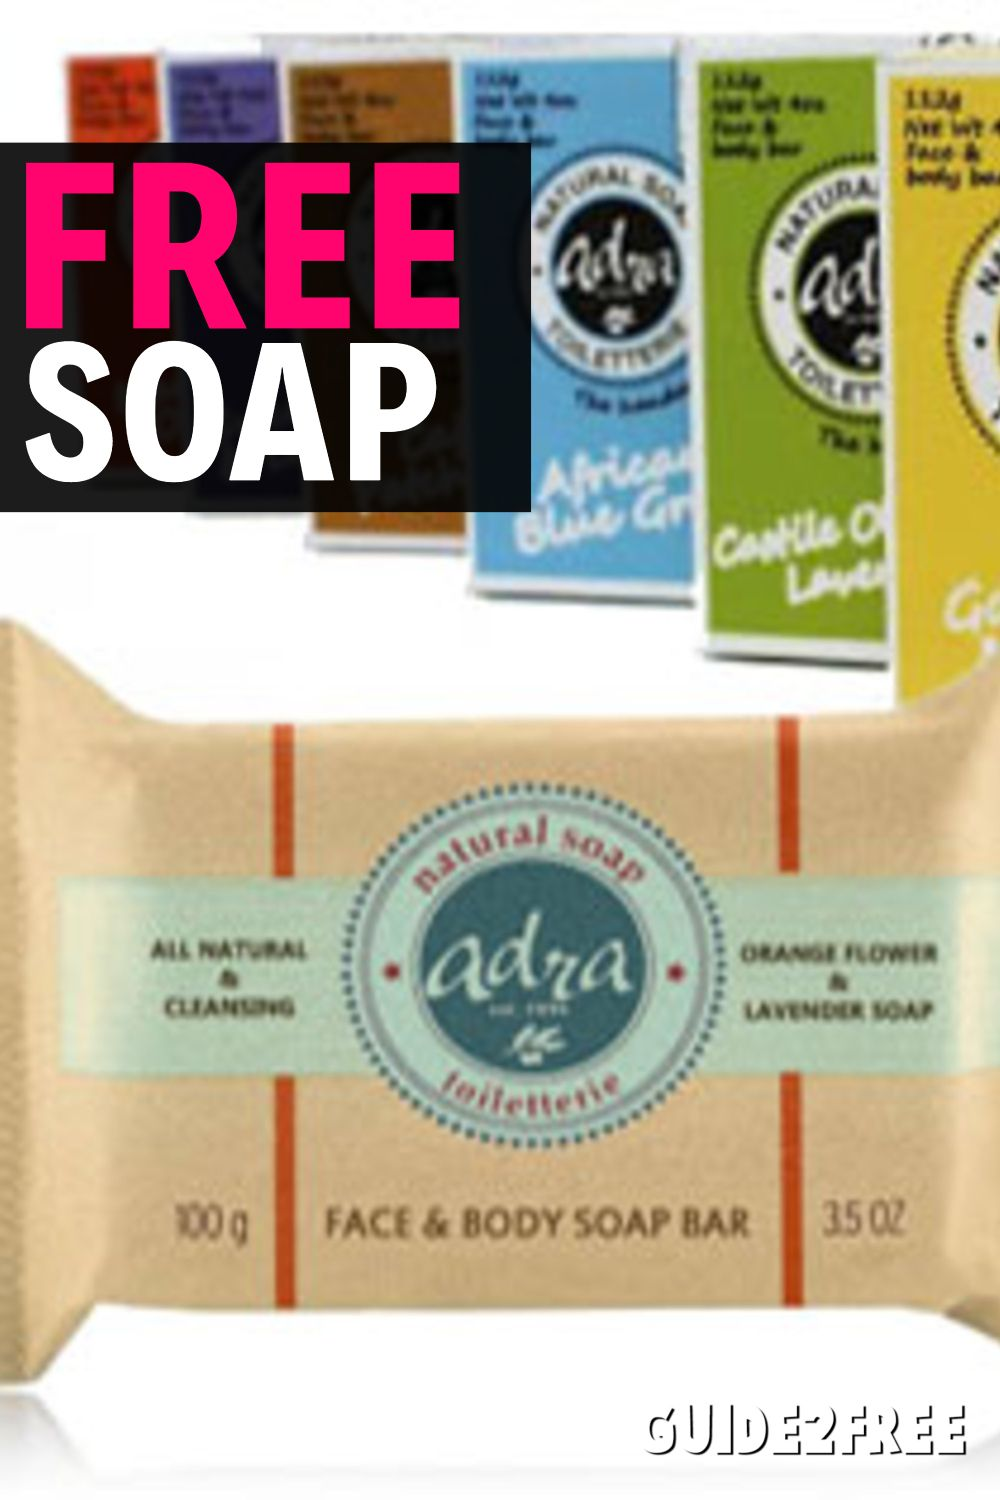 FREE Sample of Adra Natural Soap Free stuff by mail